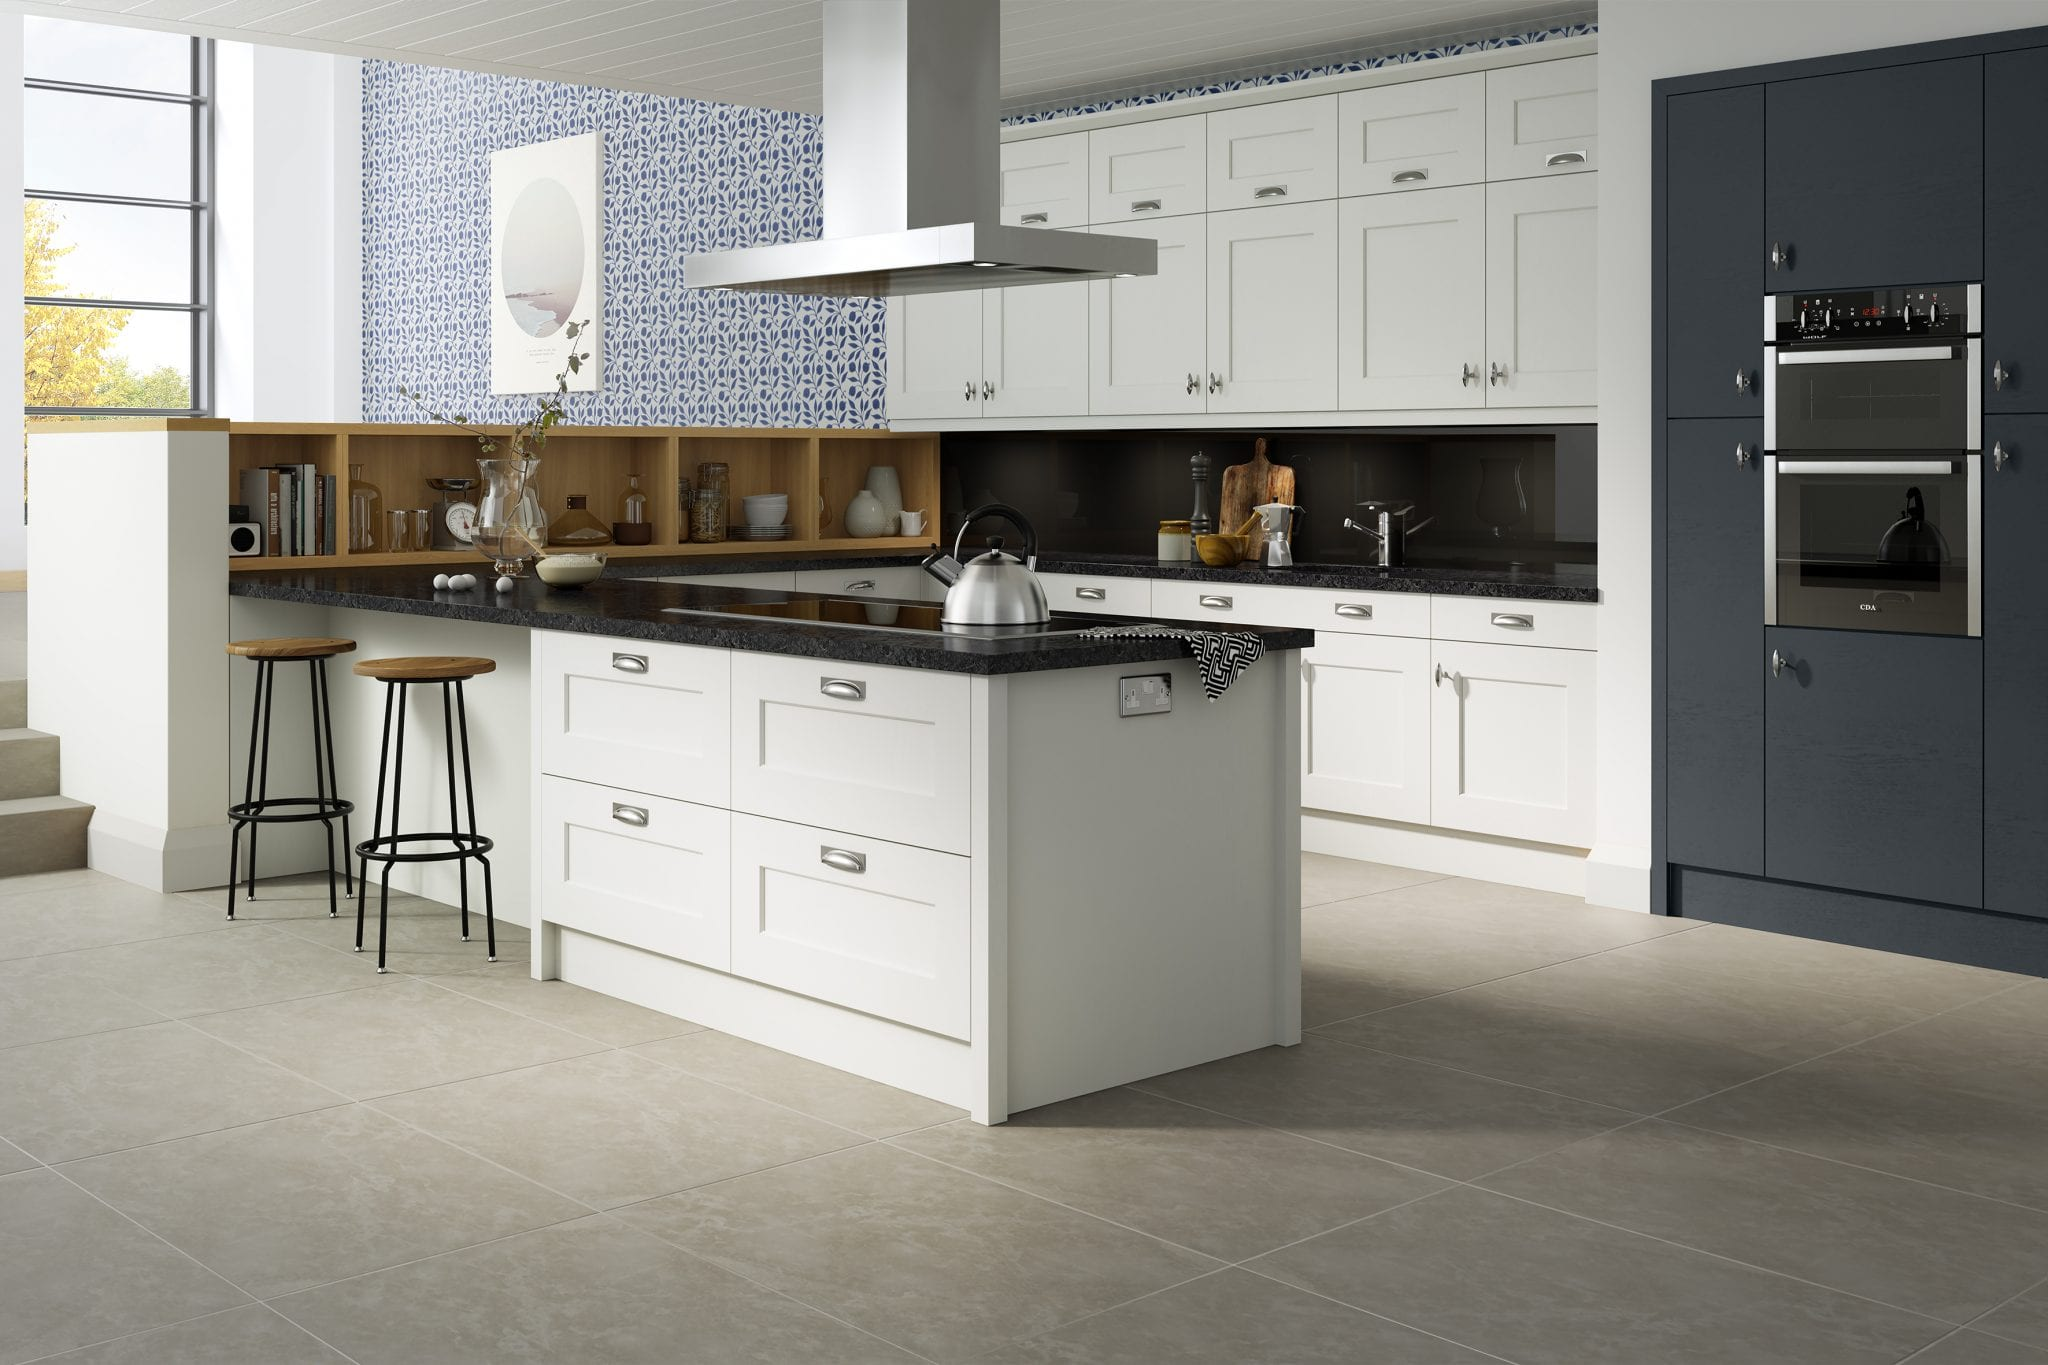 Shaker kitchen in white